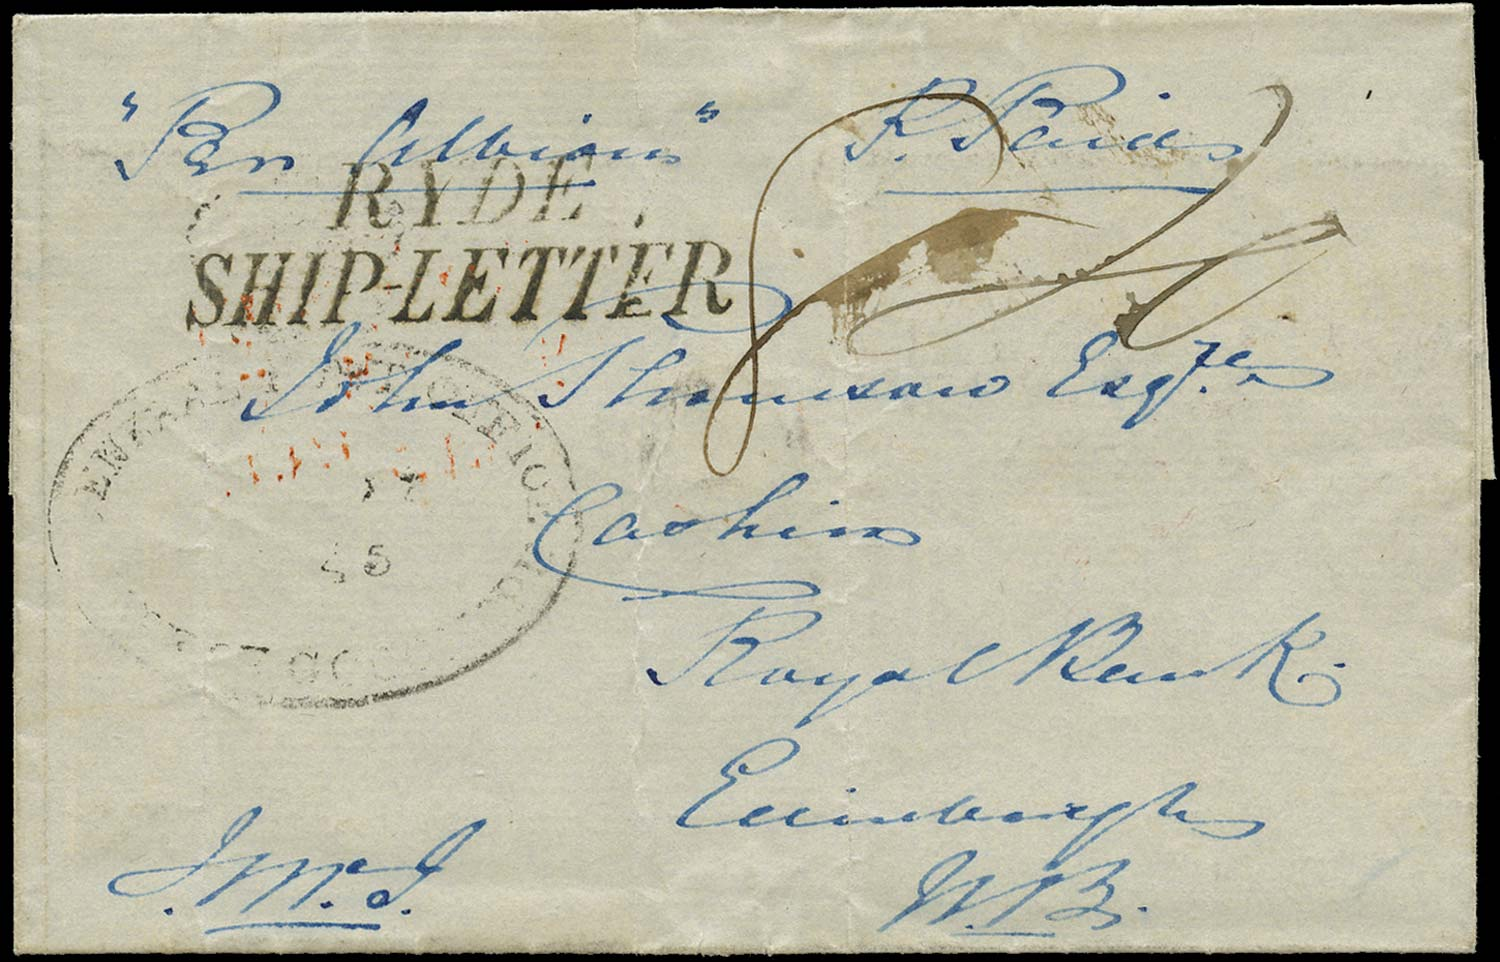 GB 1845 Pre-Stamp - Ryde type S5 Ship Letter